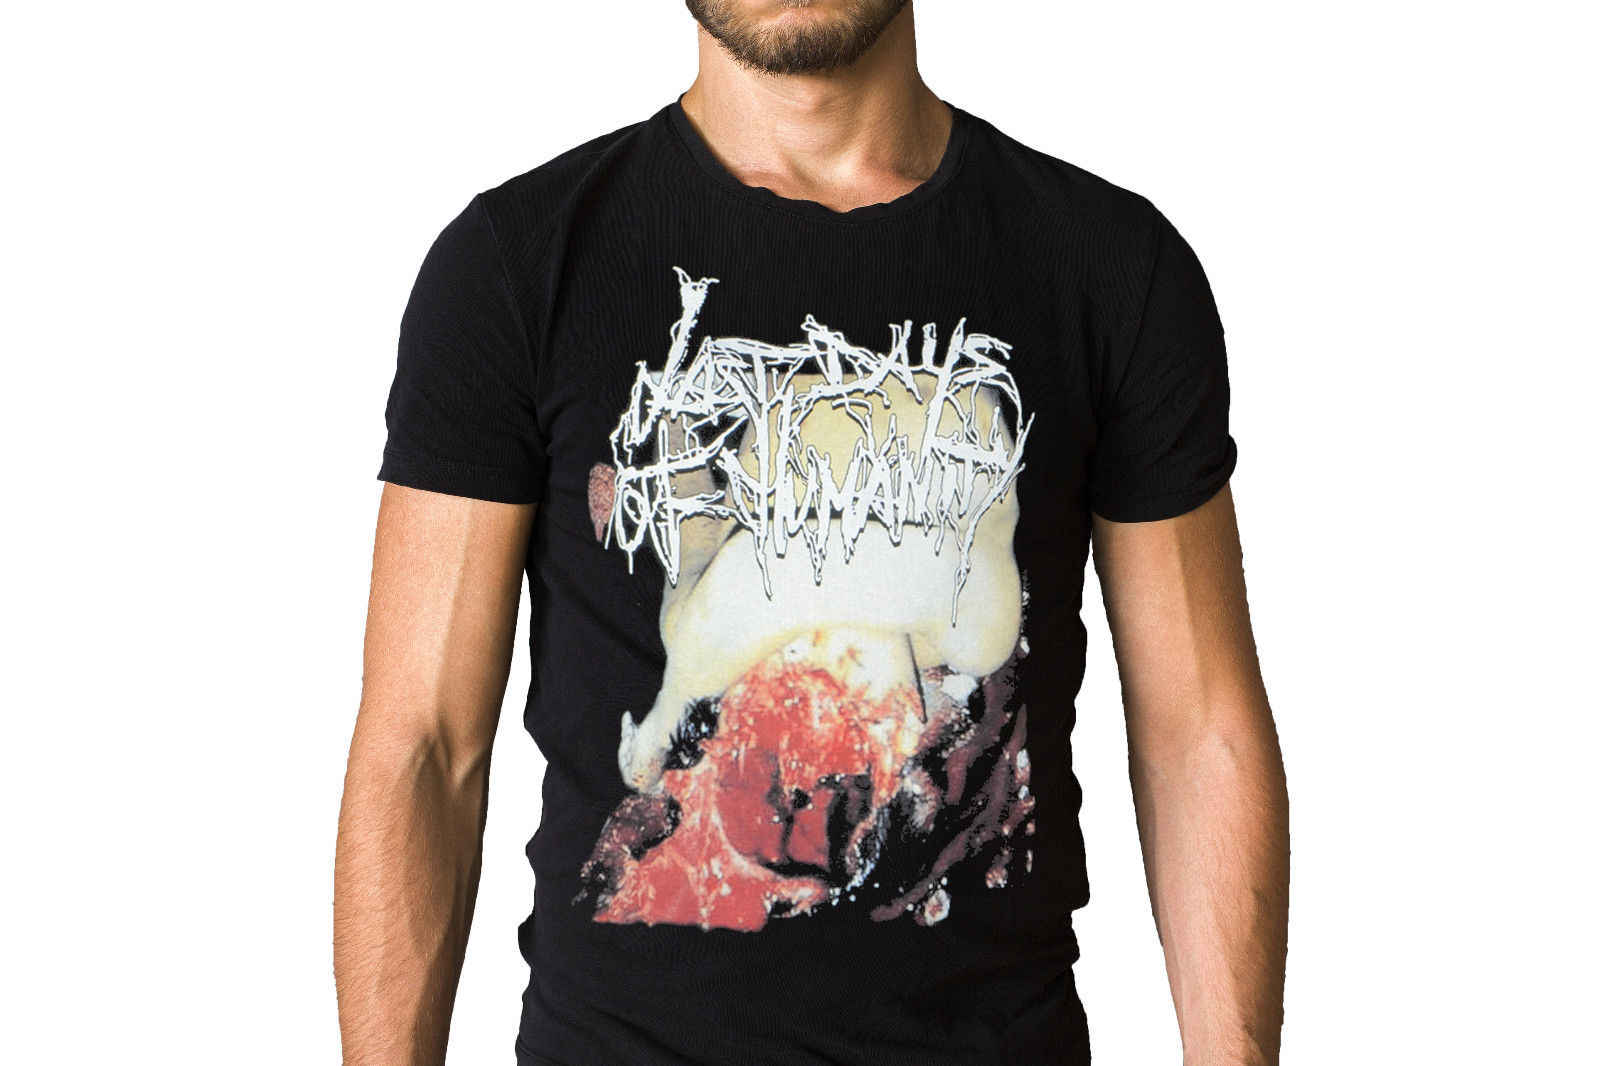 Last Days Of Humanity Hymns Of Indigestible Suppuration 2000 Album Cover T-Shirt 2018 Hot Sale New Men'S T Shirt